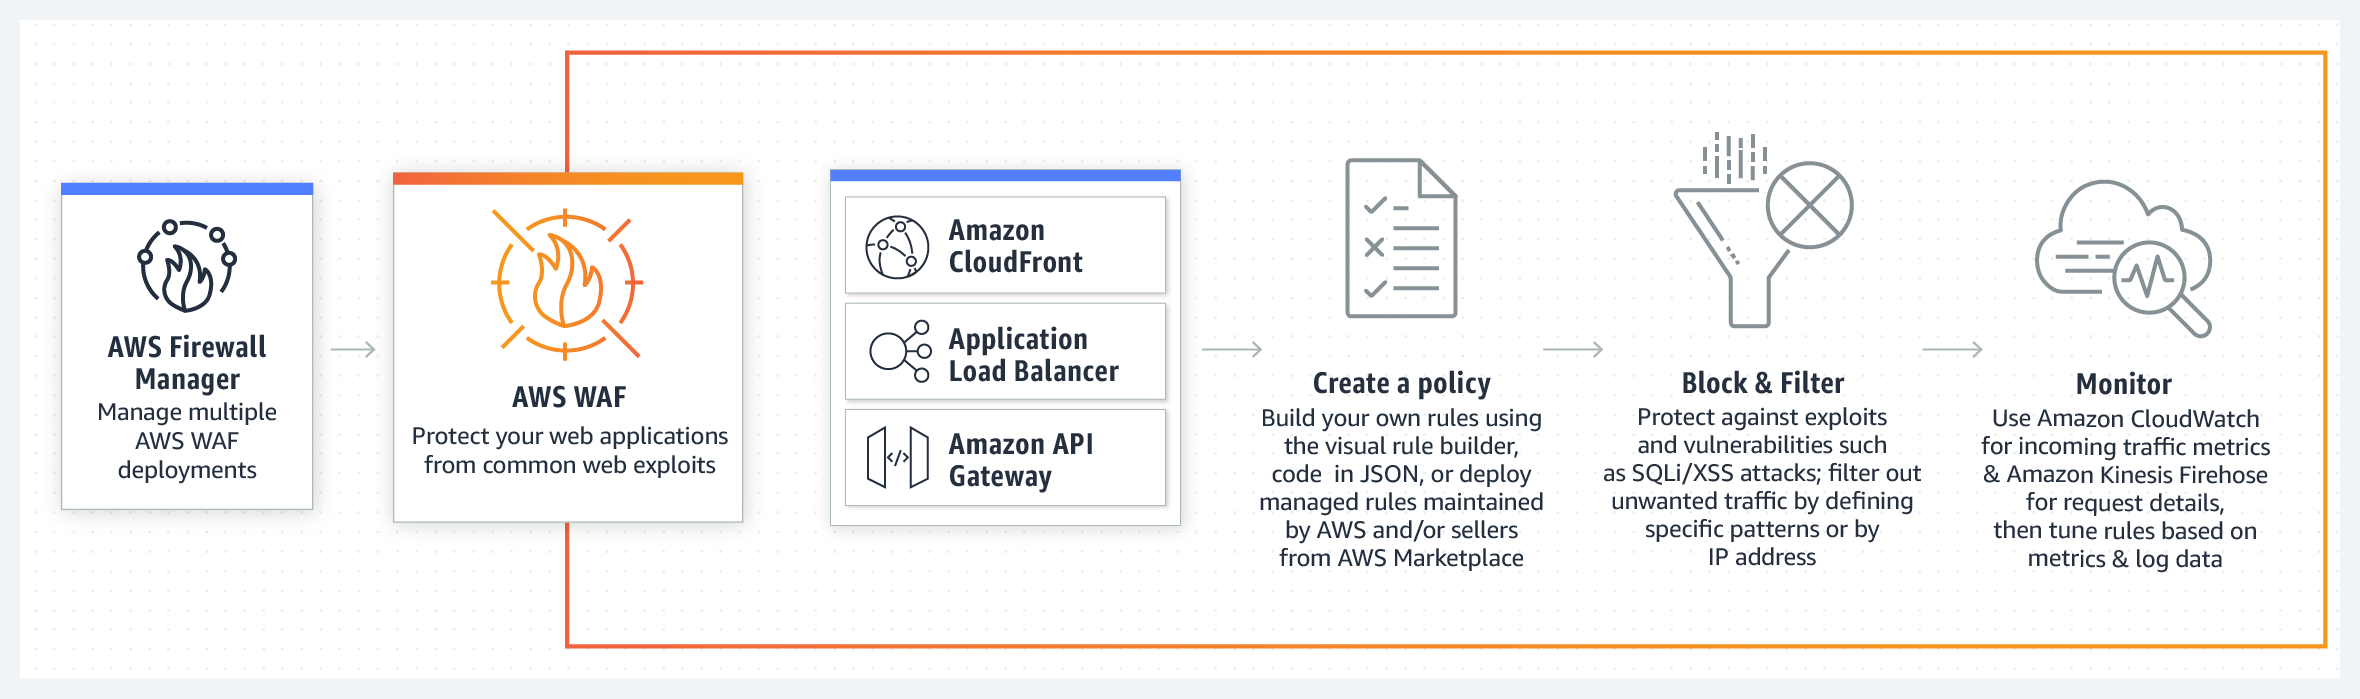 [AWS WAF] CloudFrontへアクセス可能なソースIPを社内イントラに制限